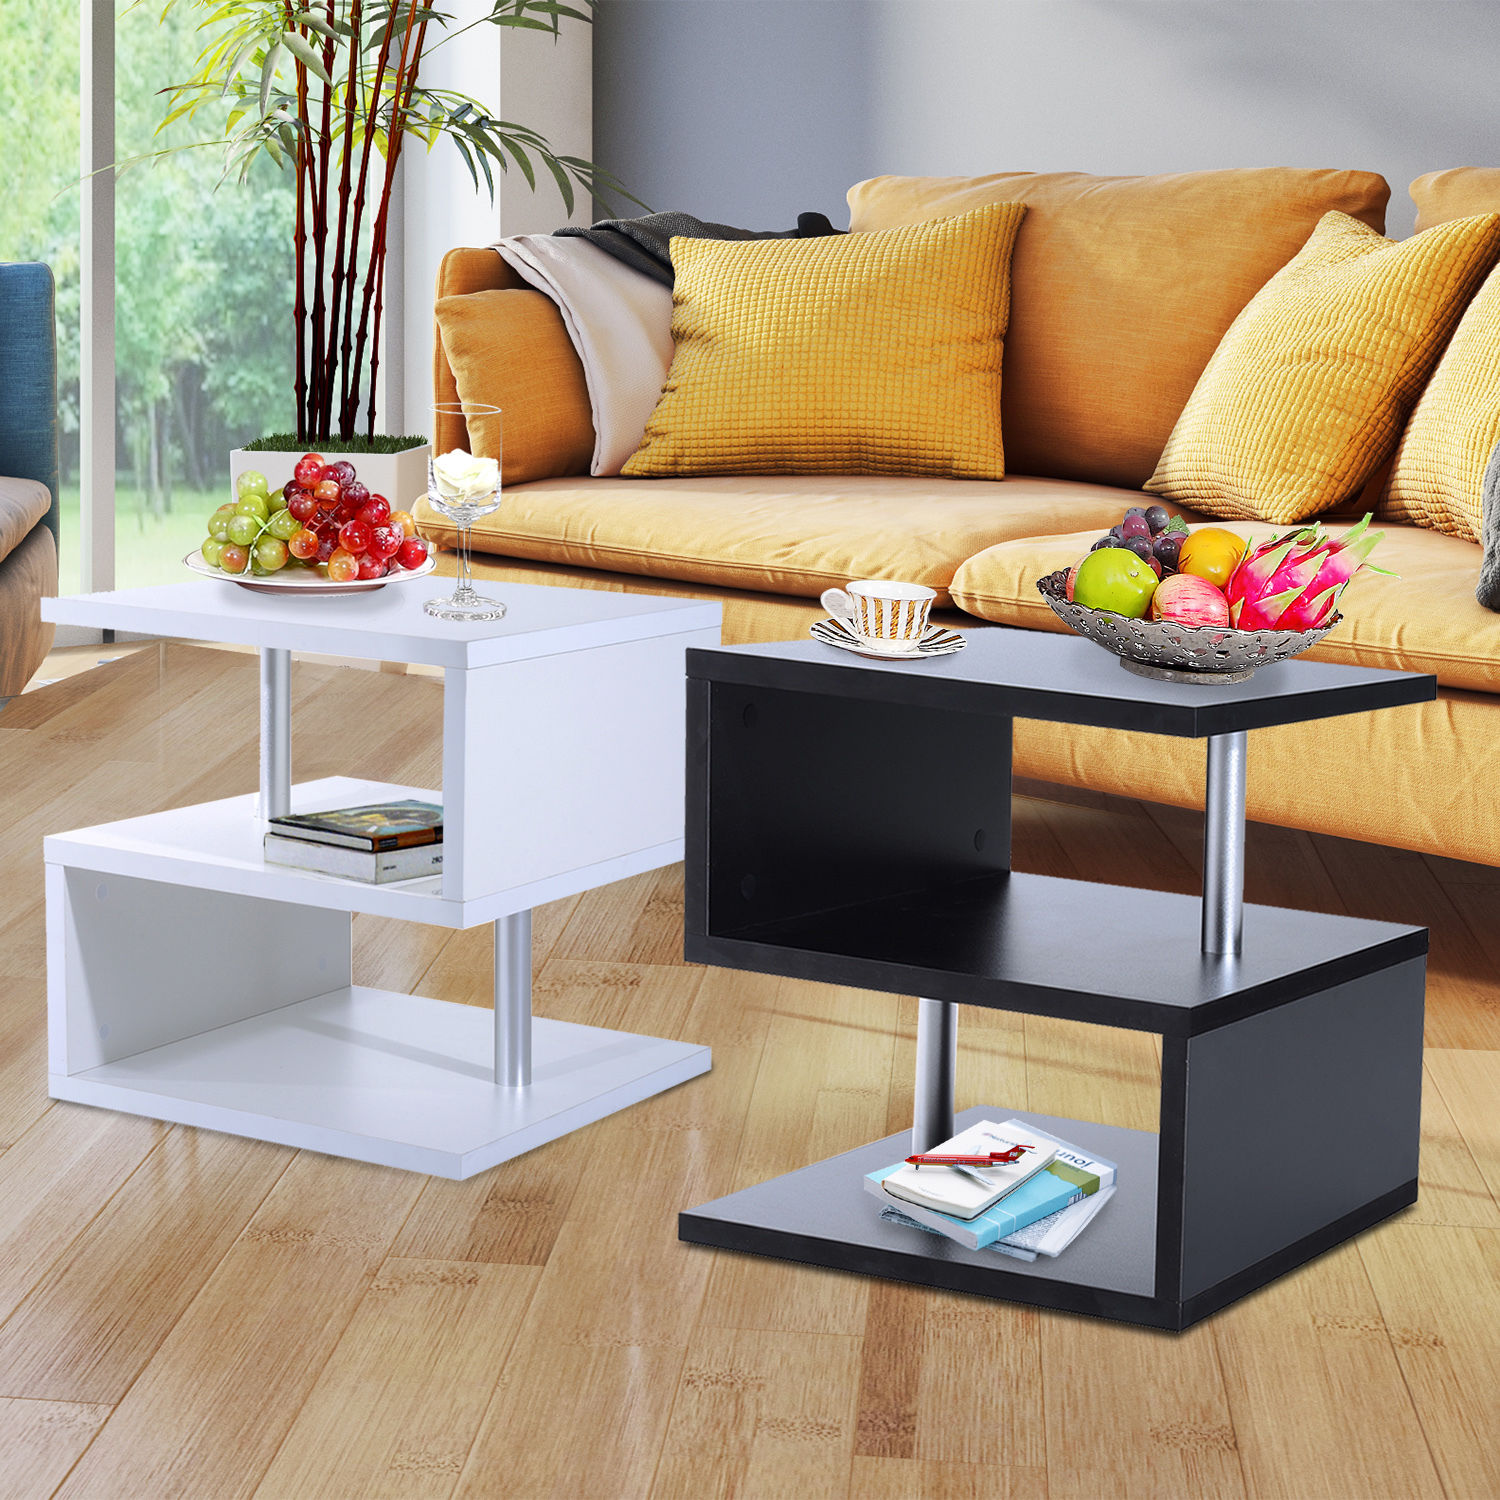 End Table For Living Room Details About Modern Coffee Table Side End Table 2 Shelf Storage Living Room Furniture